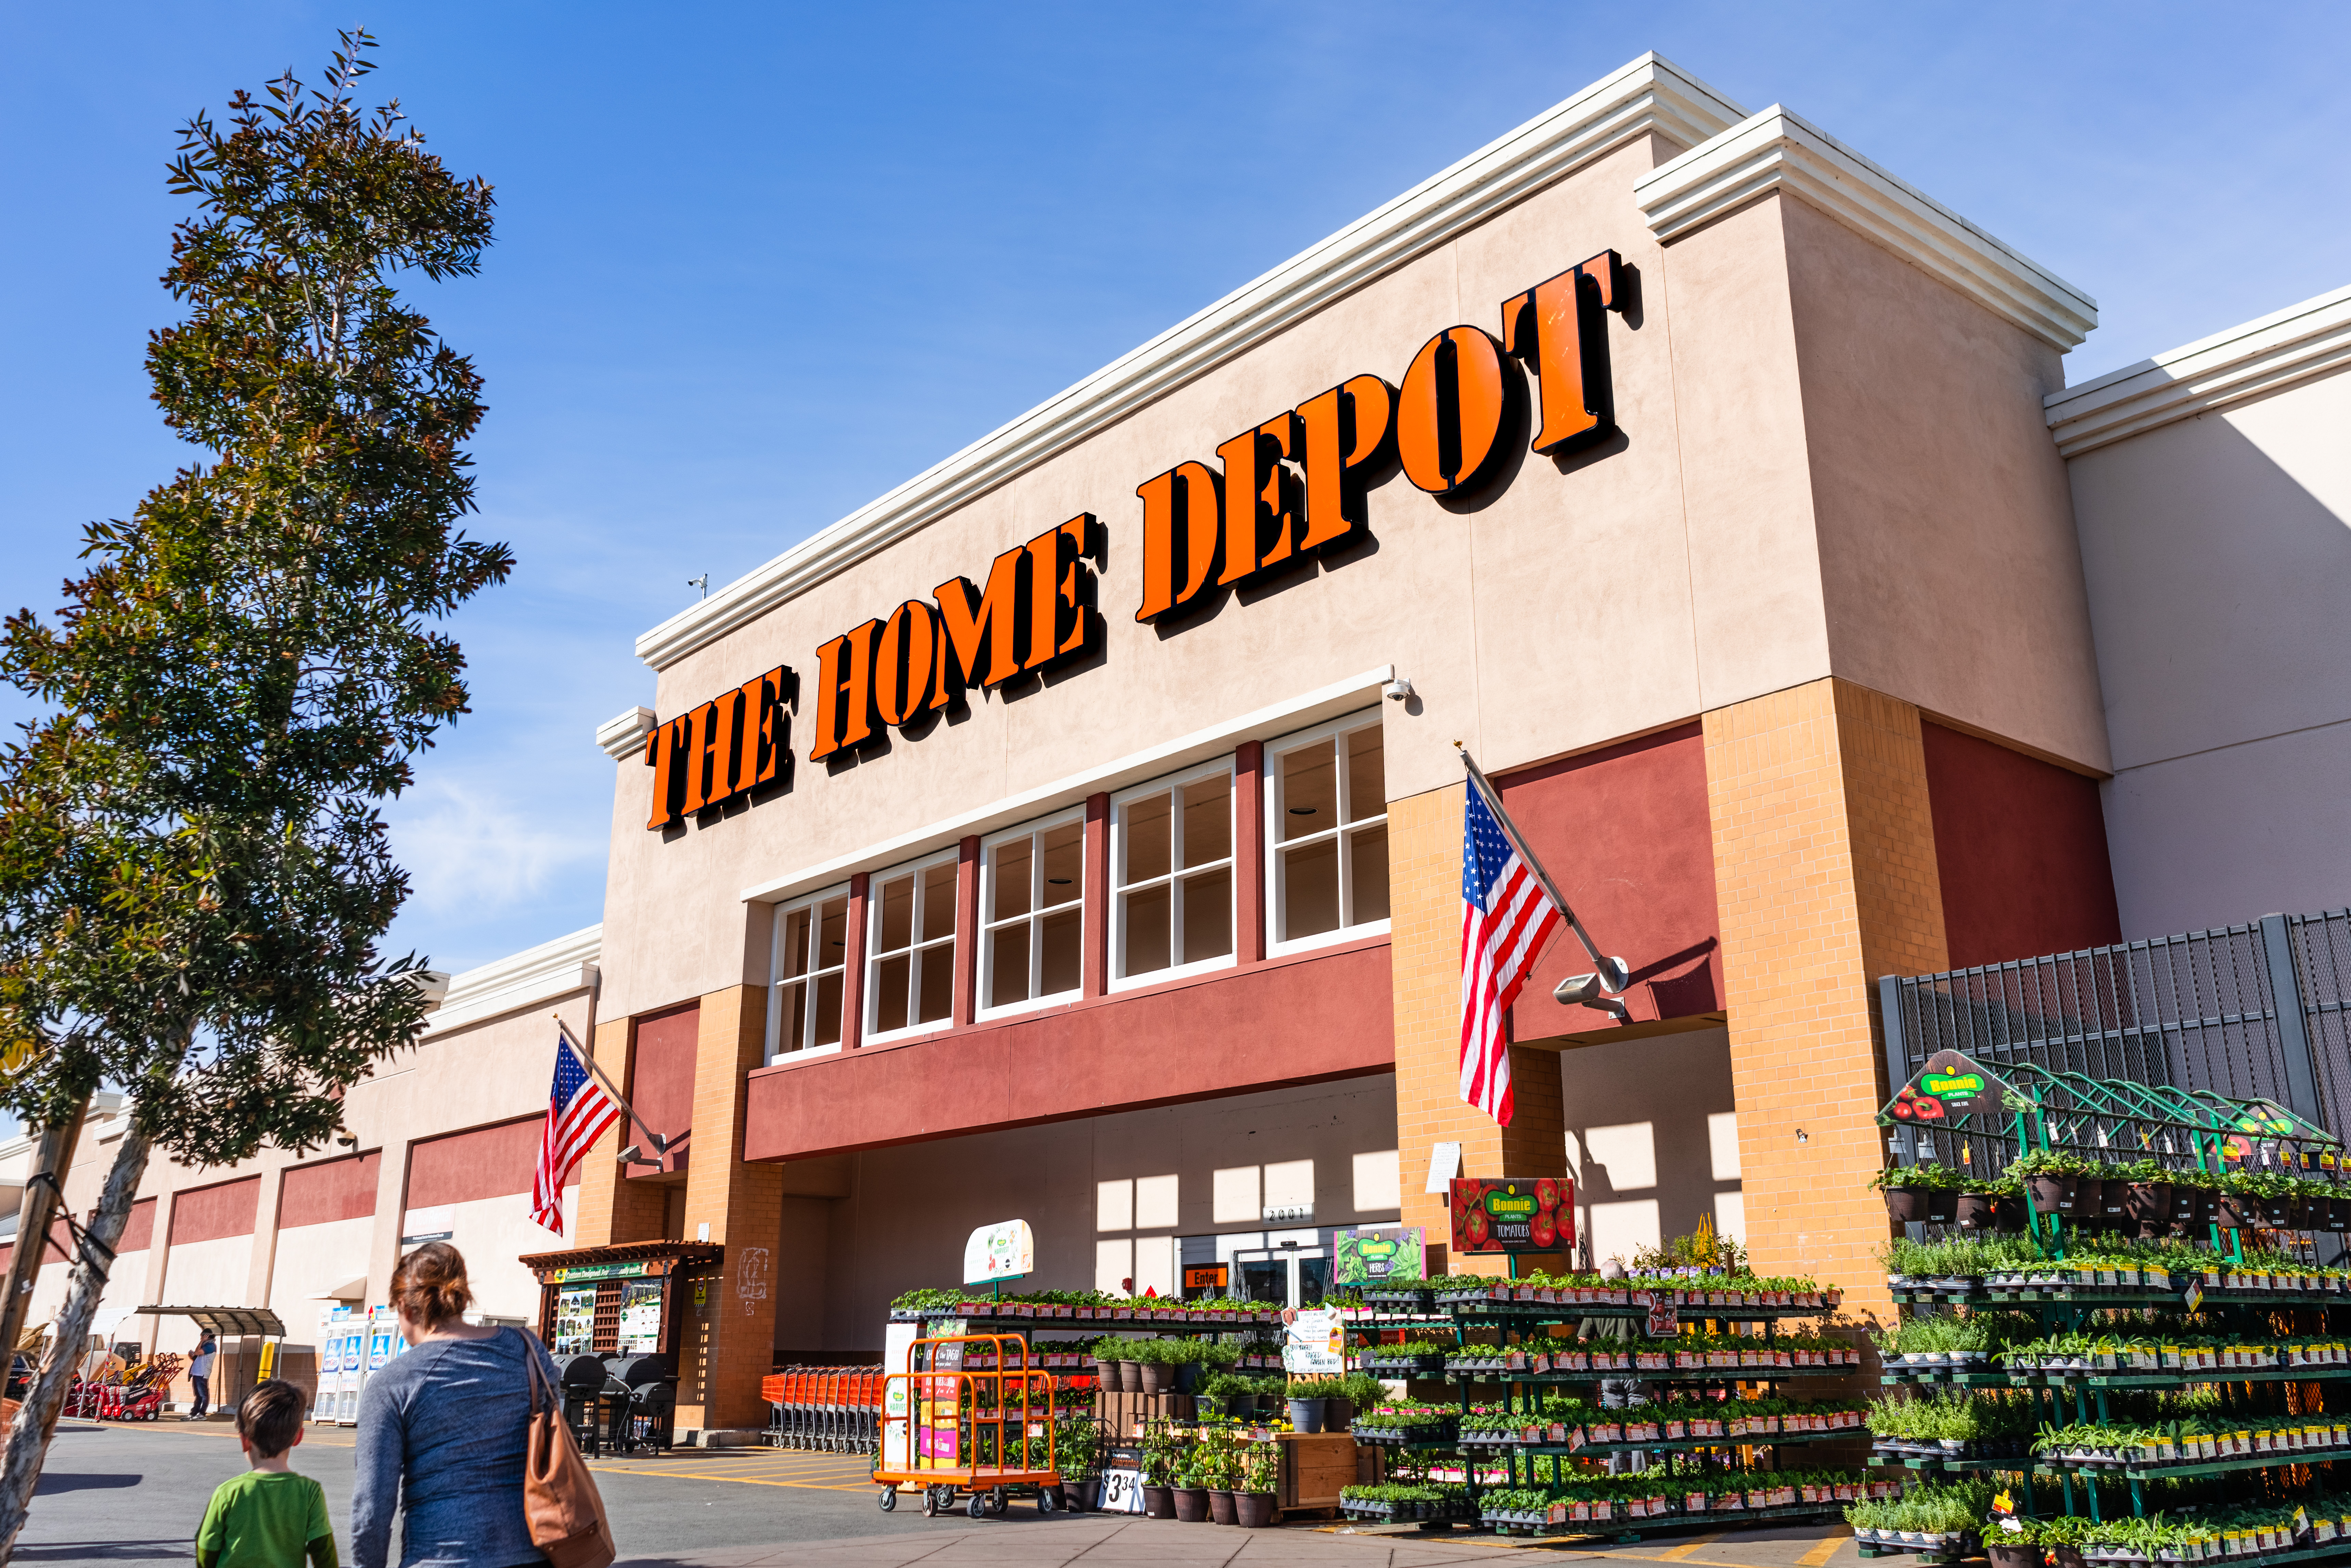 Home Depot's 'One Supply Chain' is taking shape with massive 2021 growth